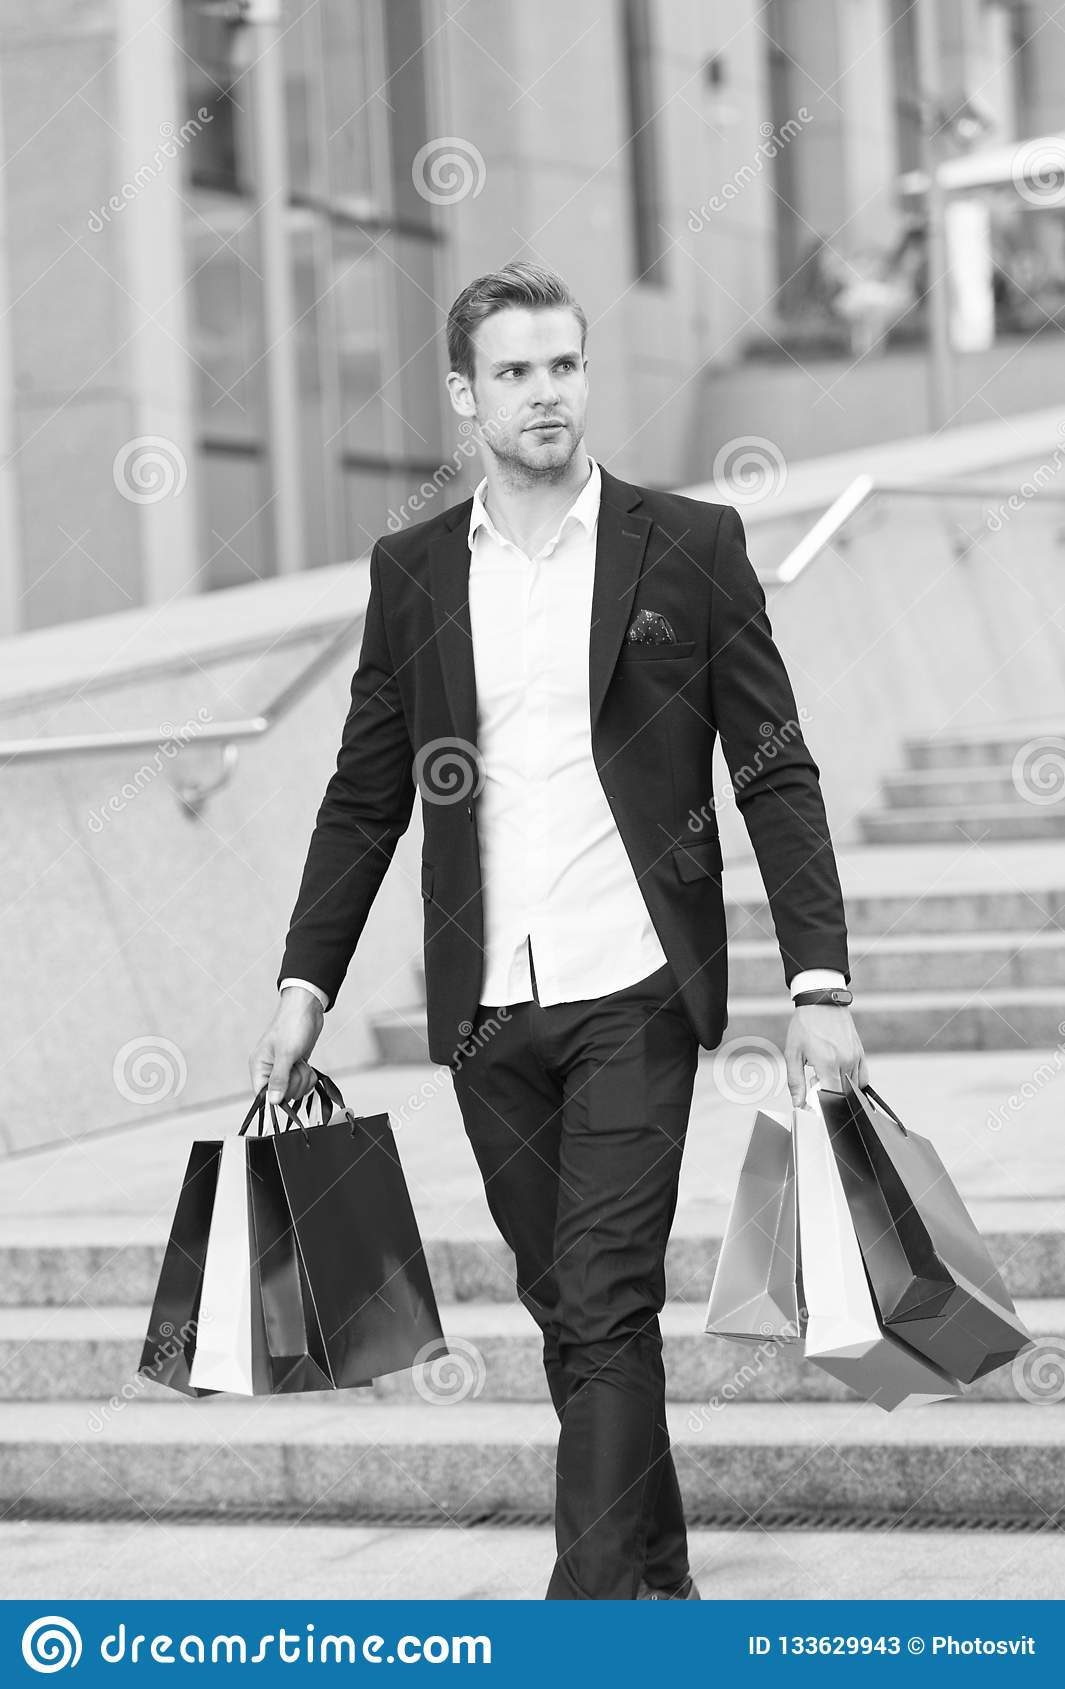 Luxury shopping. Boutique gallery client. Man shopper carries shopping bags urban background. Successful businessman